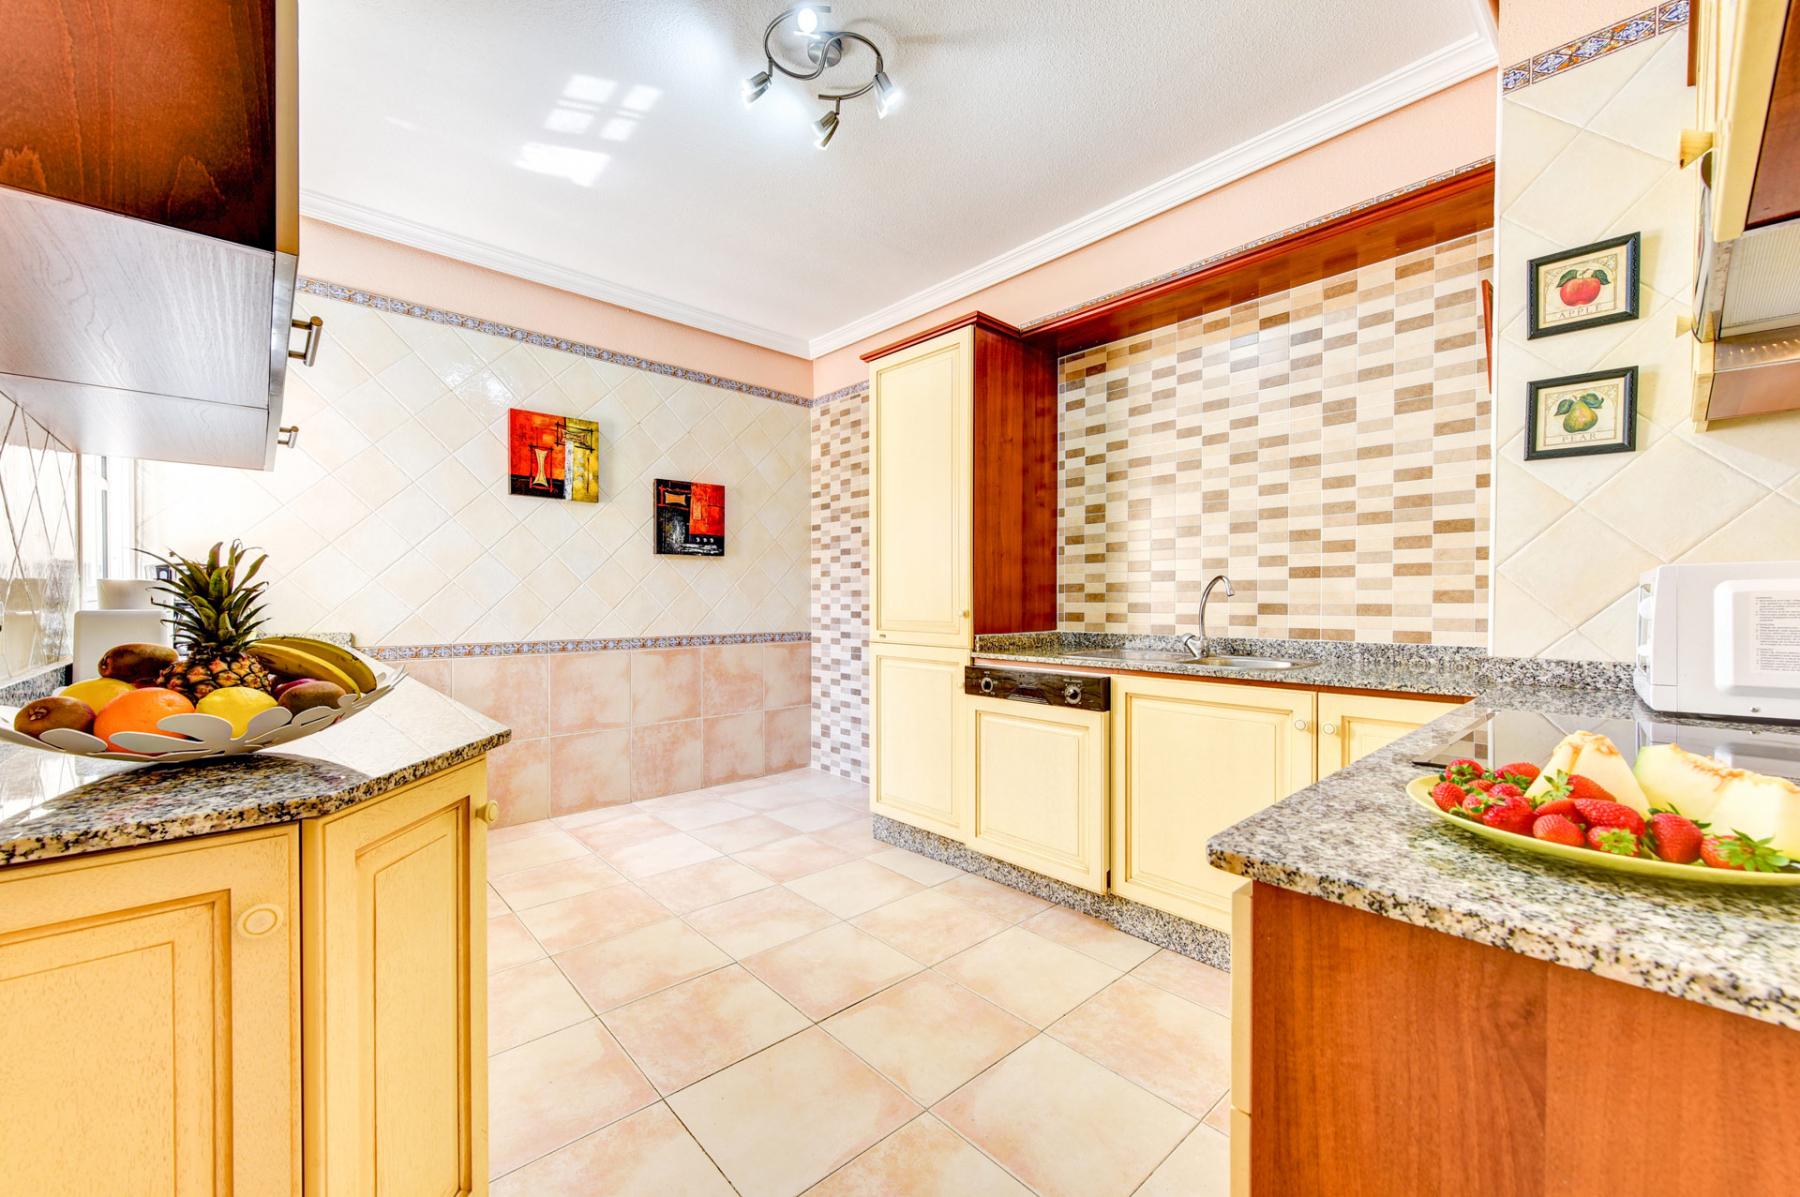 Properties for Sale in Tenerife, Canary Islands, Spain | SylkWayStar Real Estate. Villa 5 bedrooms Madroñal. Image-25099